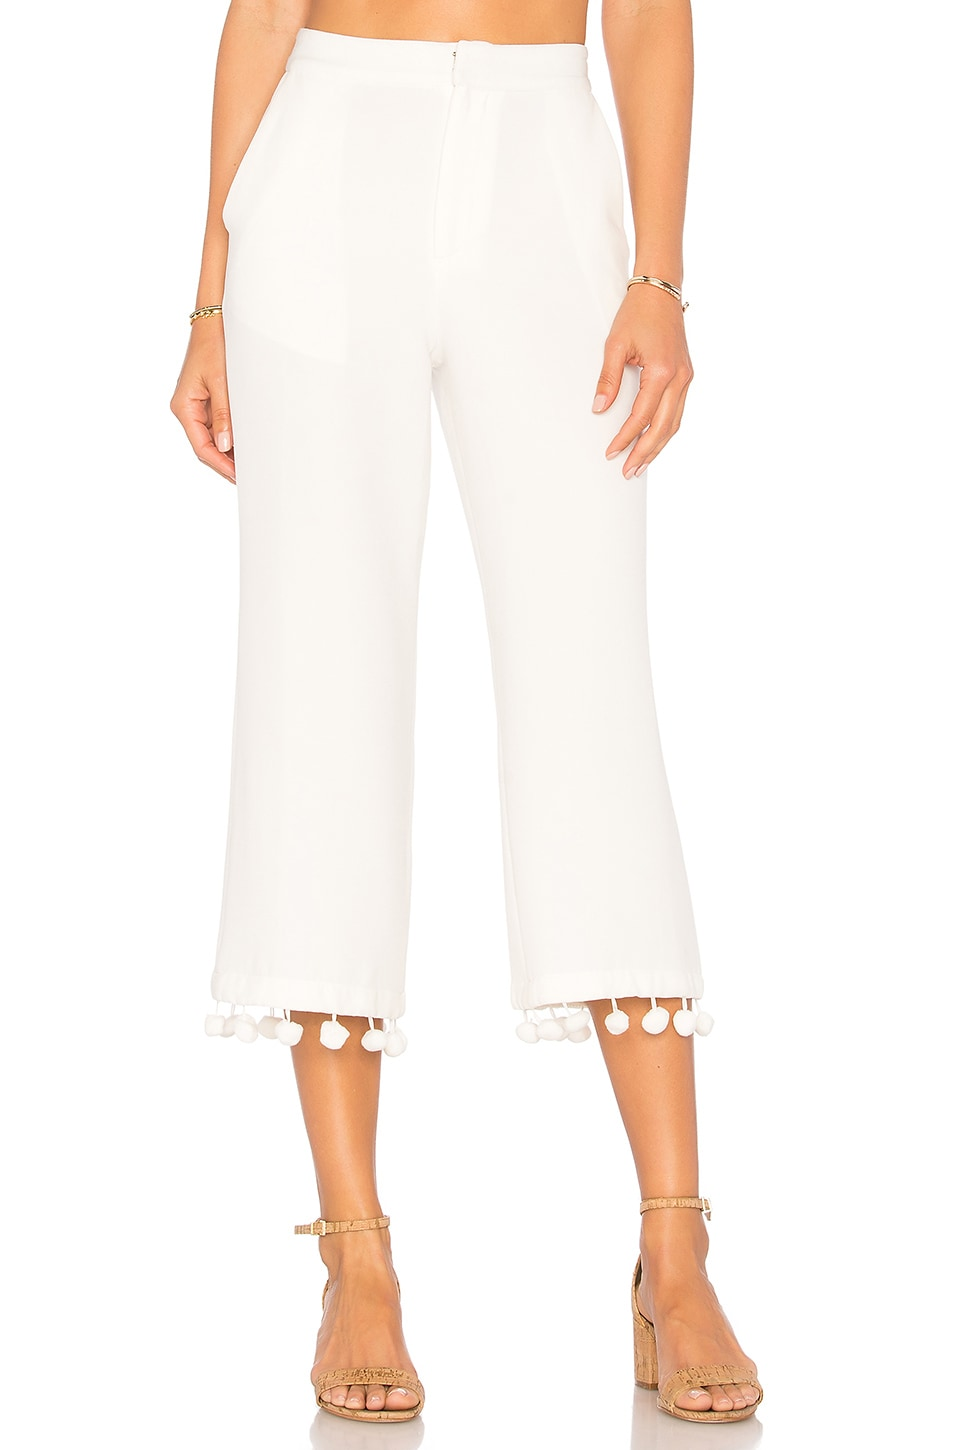 Tularosa x REVOLVE Huntington Pant in Bright White